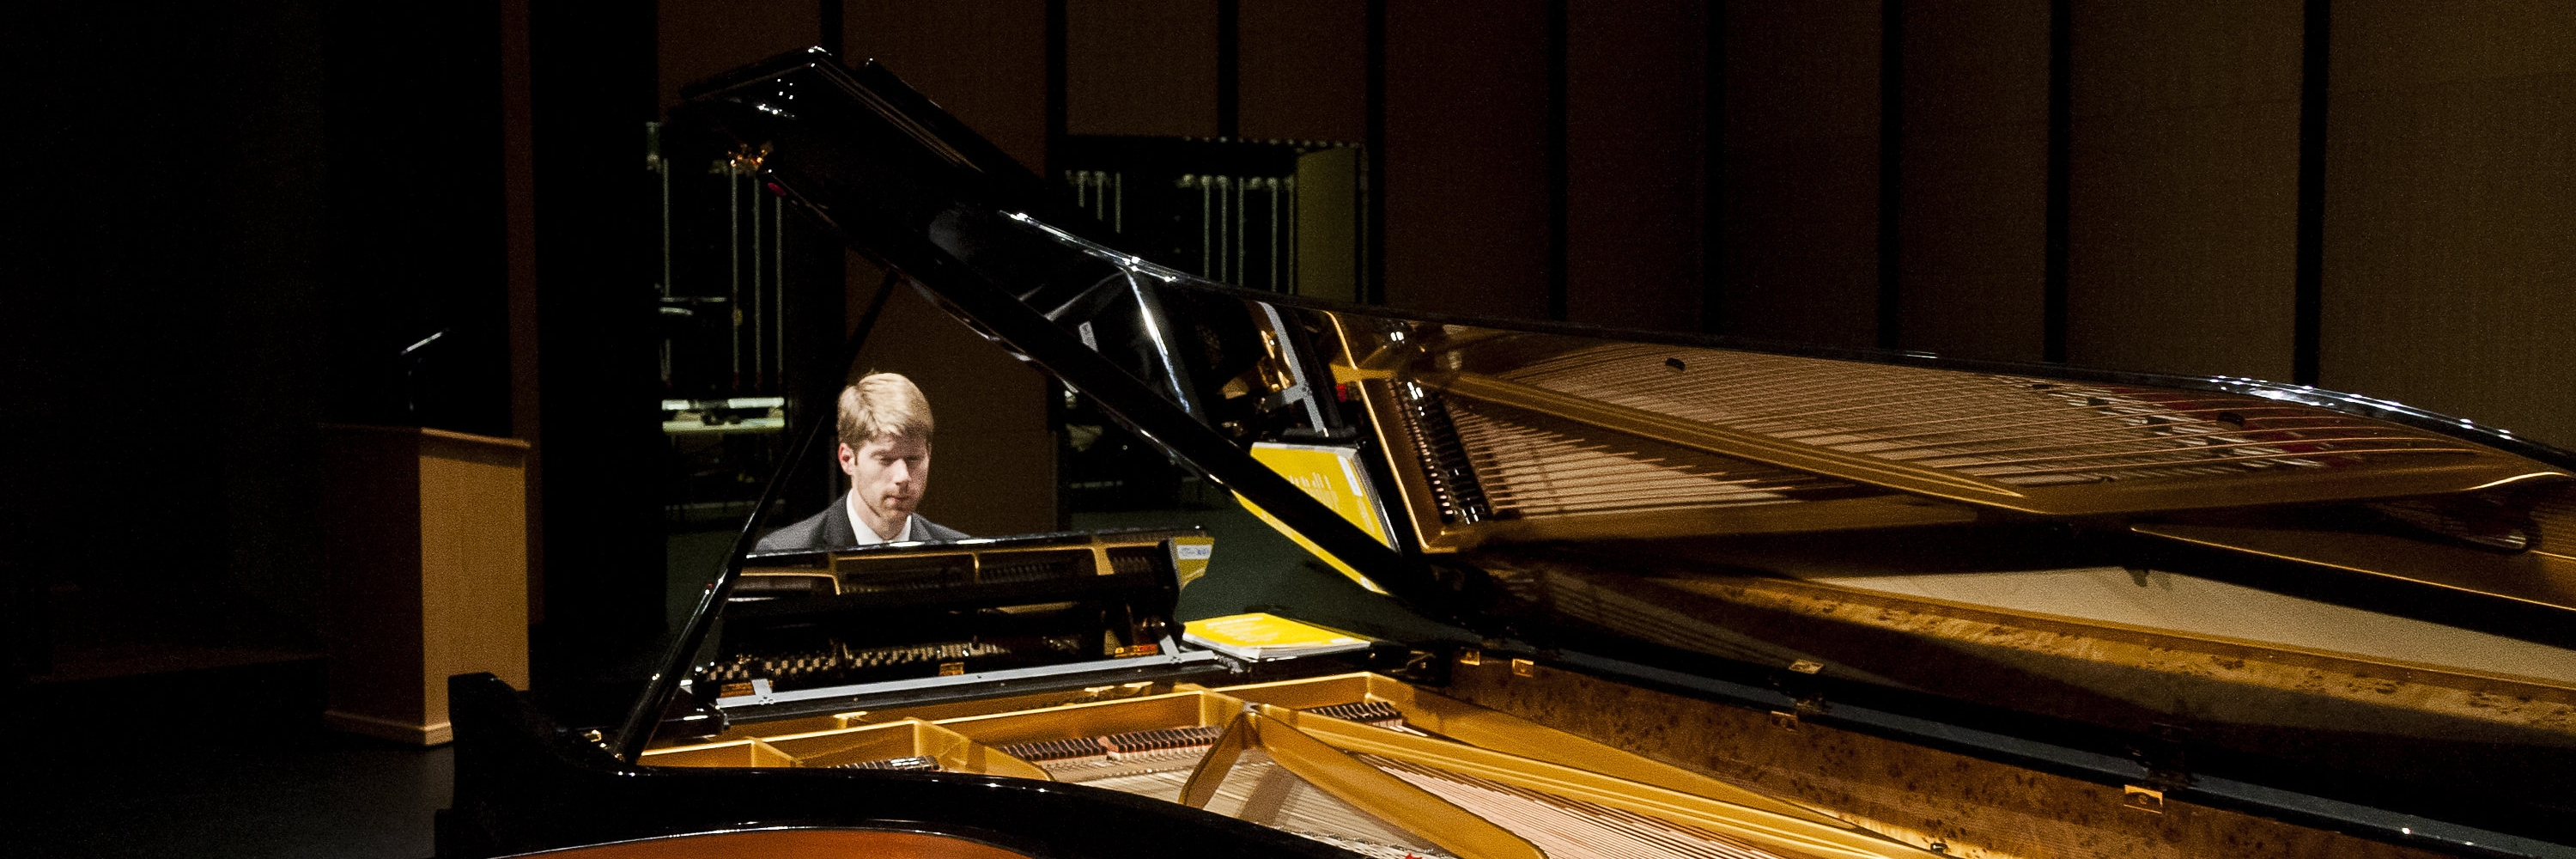 Alex McDonald, pianist, at Basically Beethoven Festival